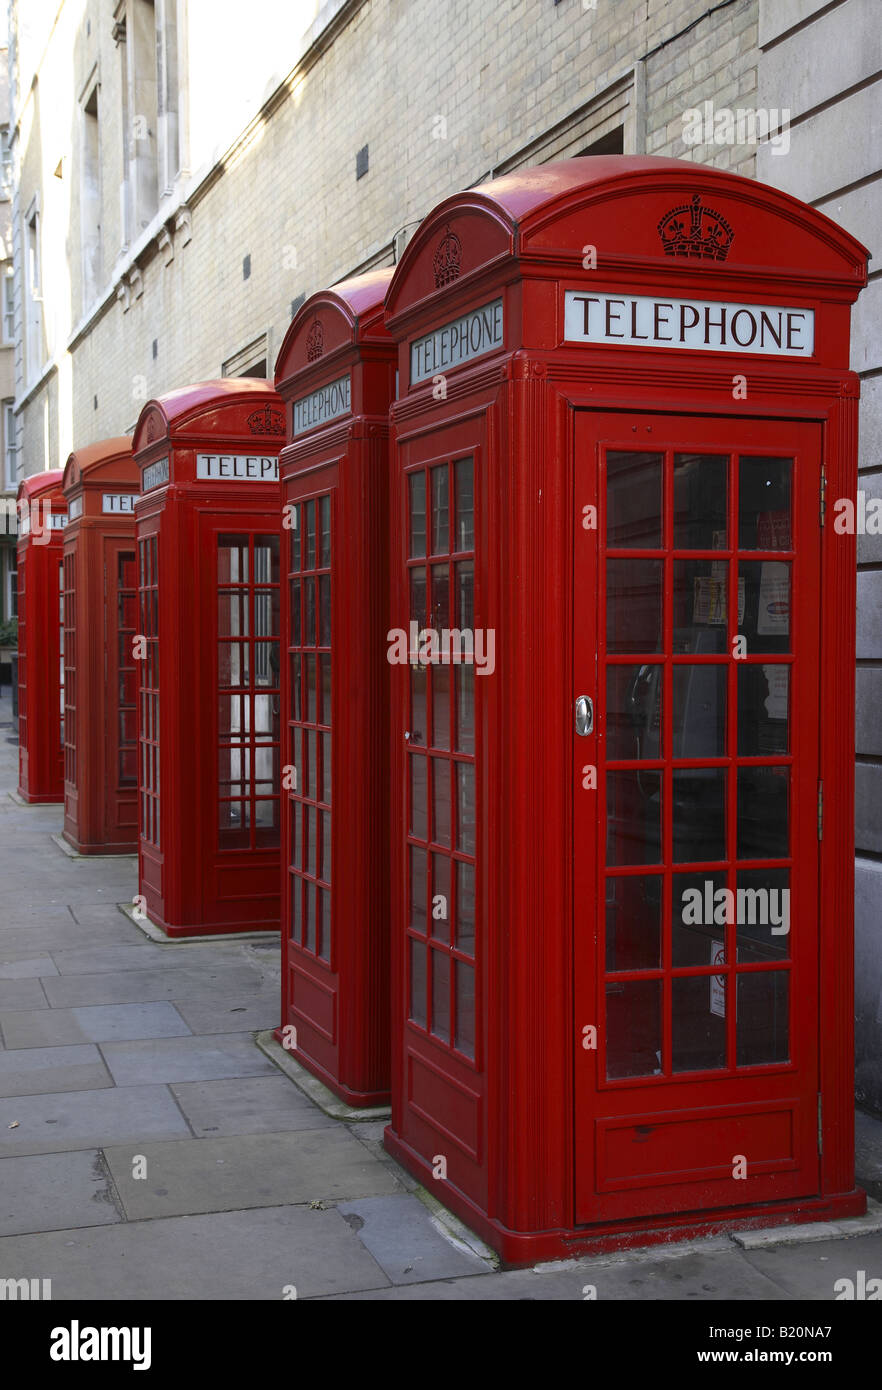 Postboxes near Covent Garden, London, UK - Stock Image